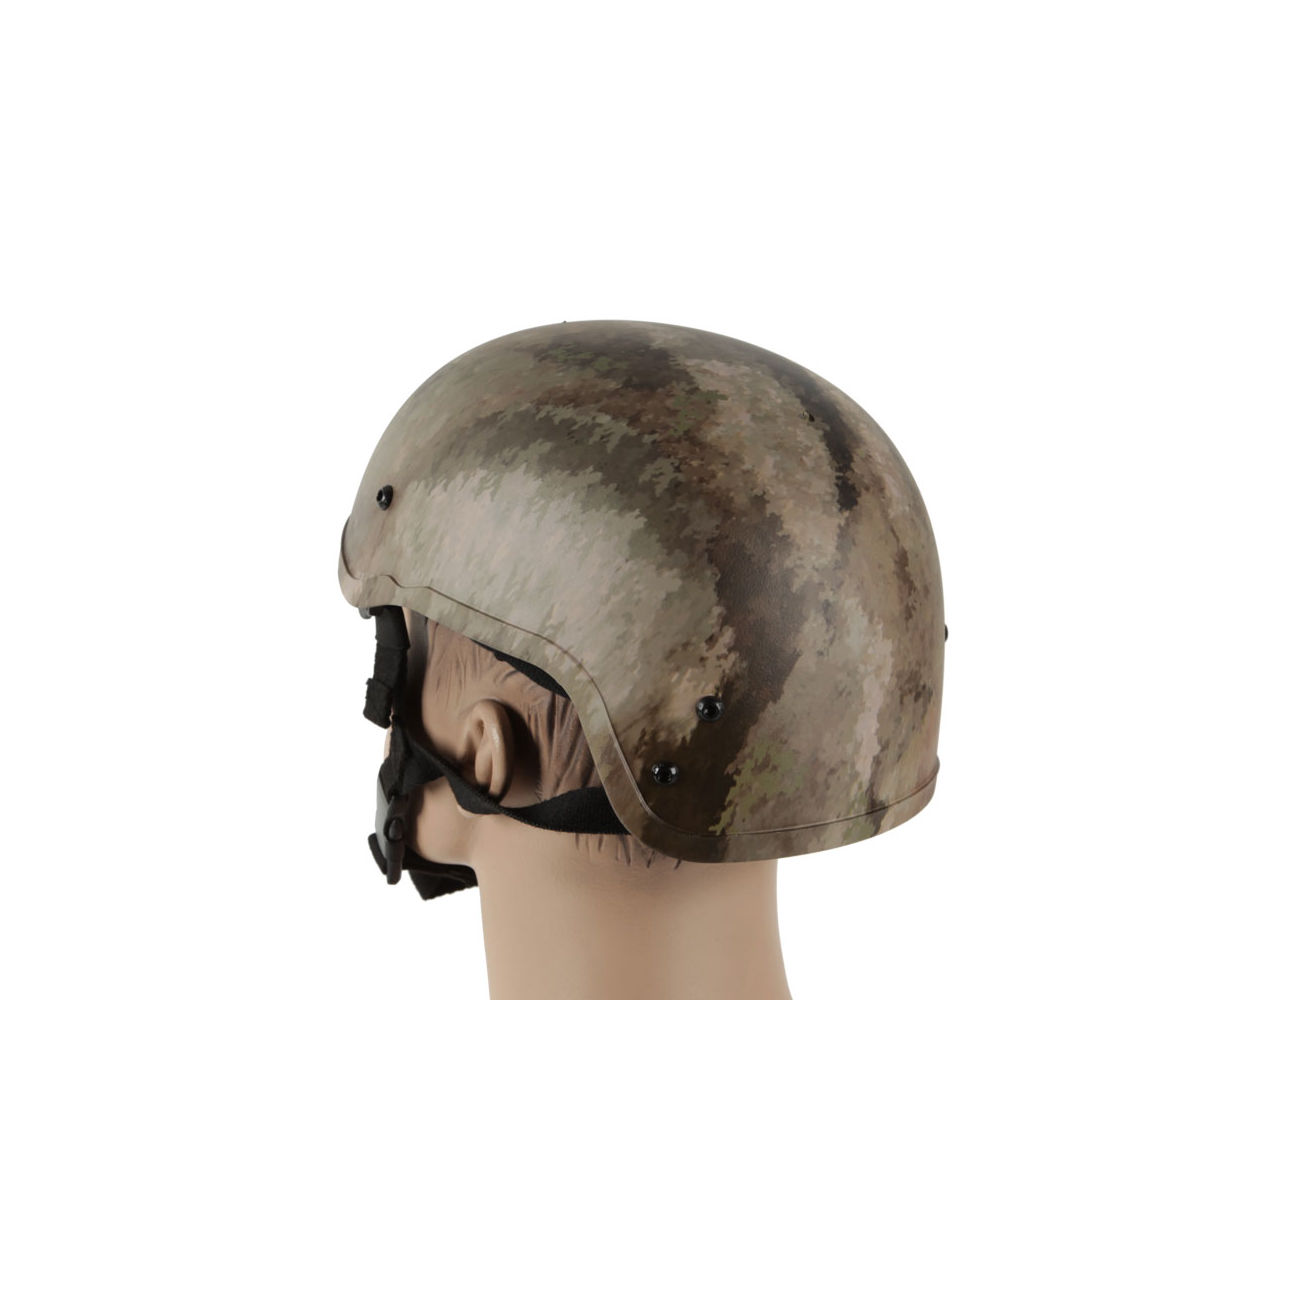 Bravo Airsoft MICH 2001 LW Helm Replika AT Camo 1